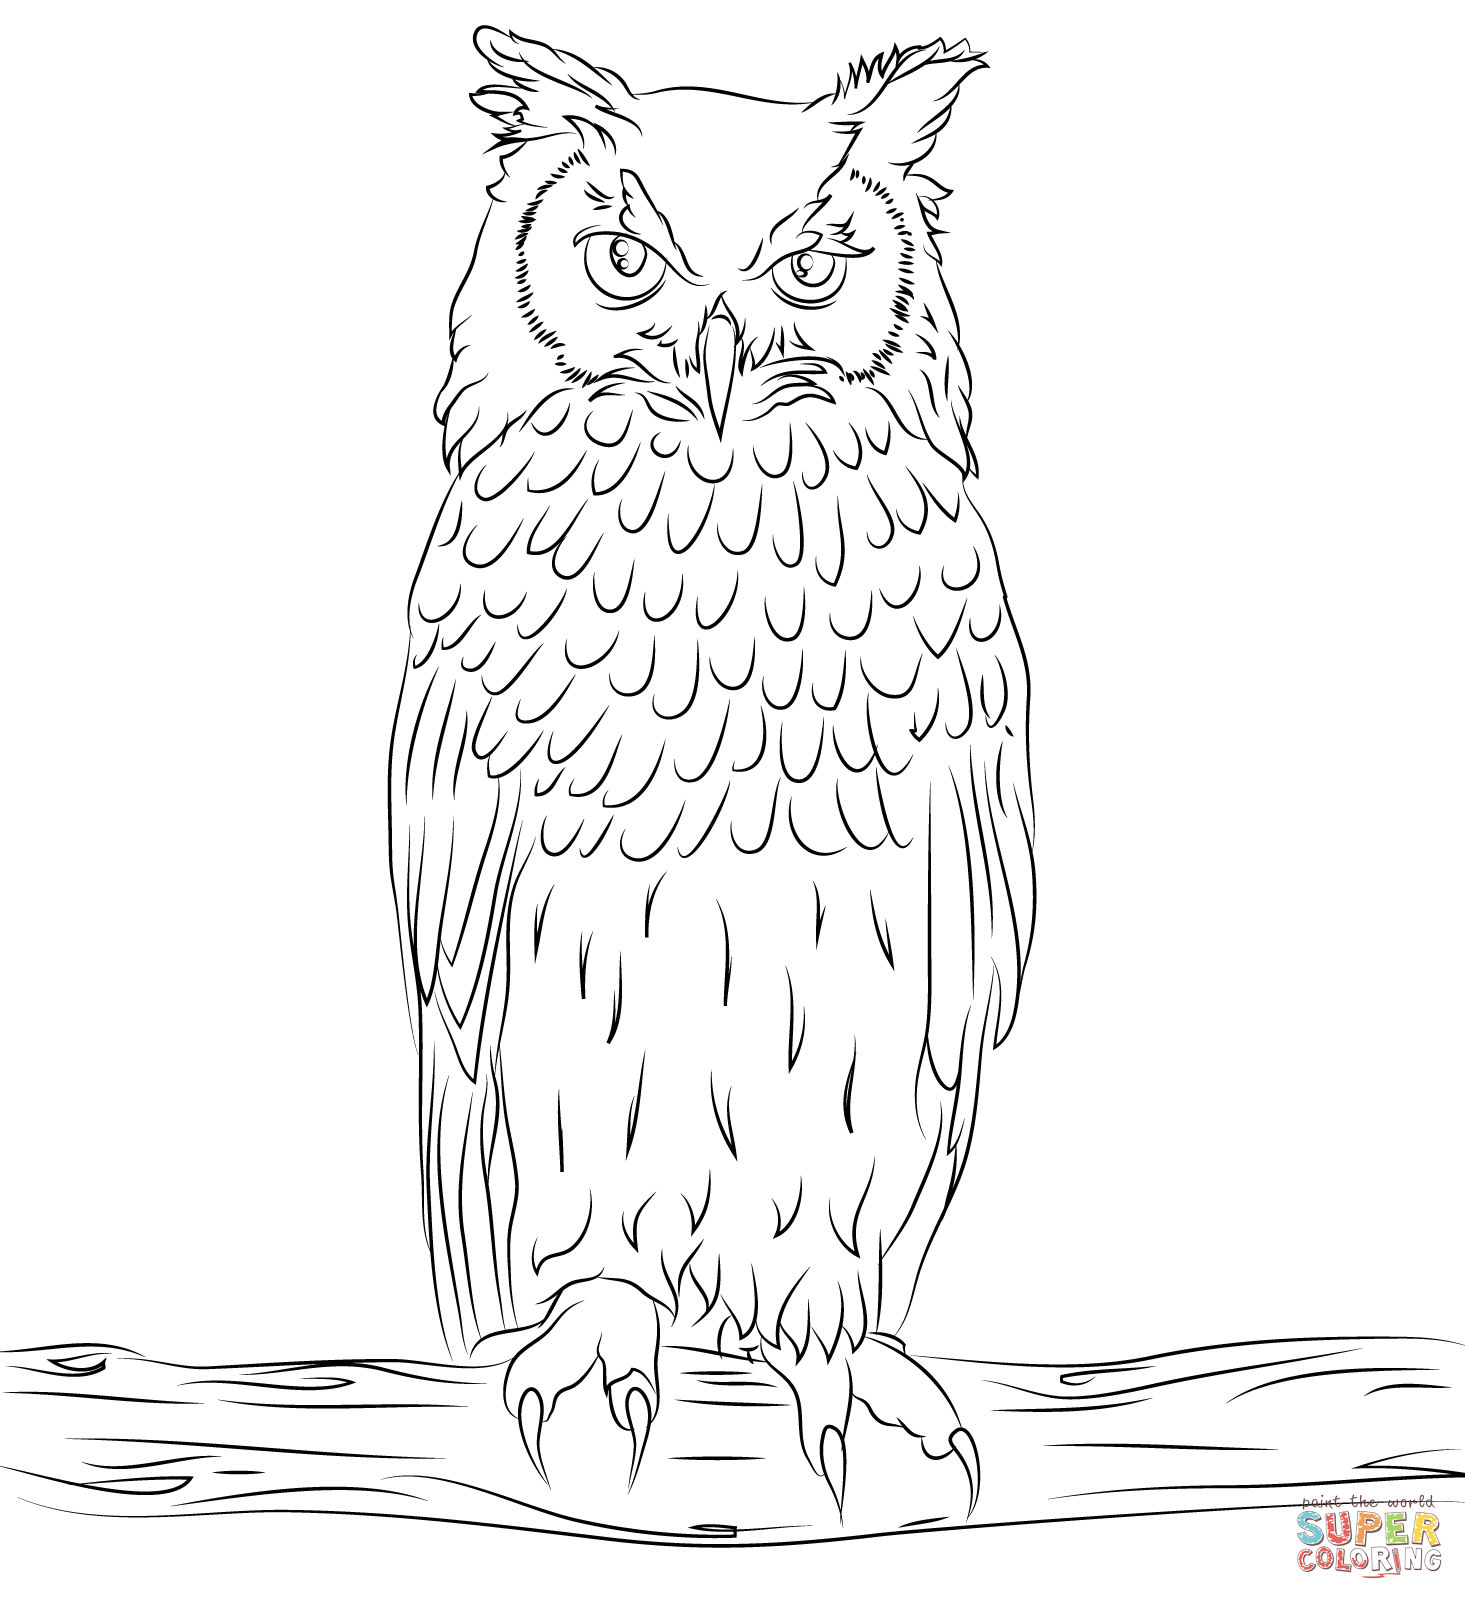 Eagle-owl coloring #16, Download drawings